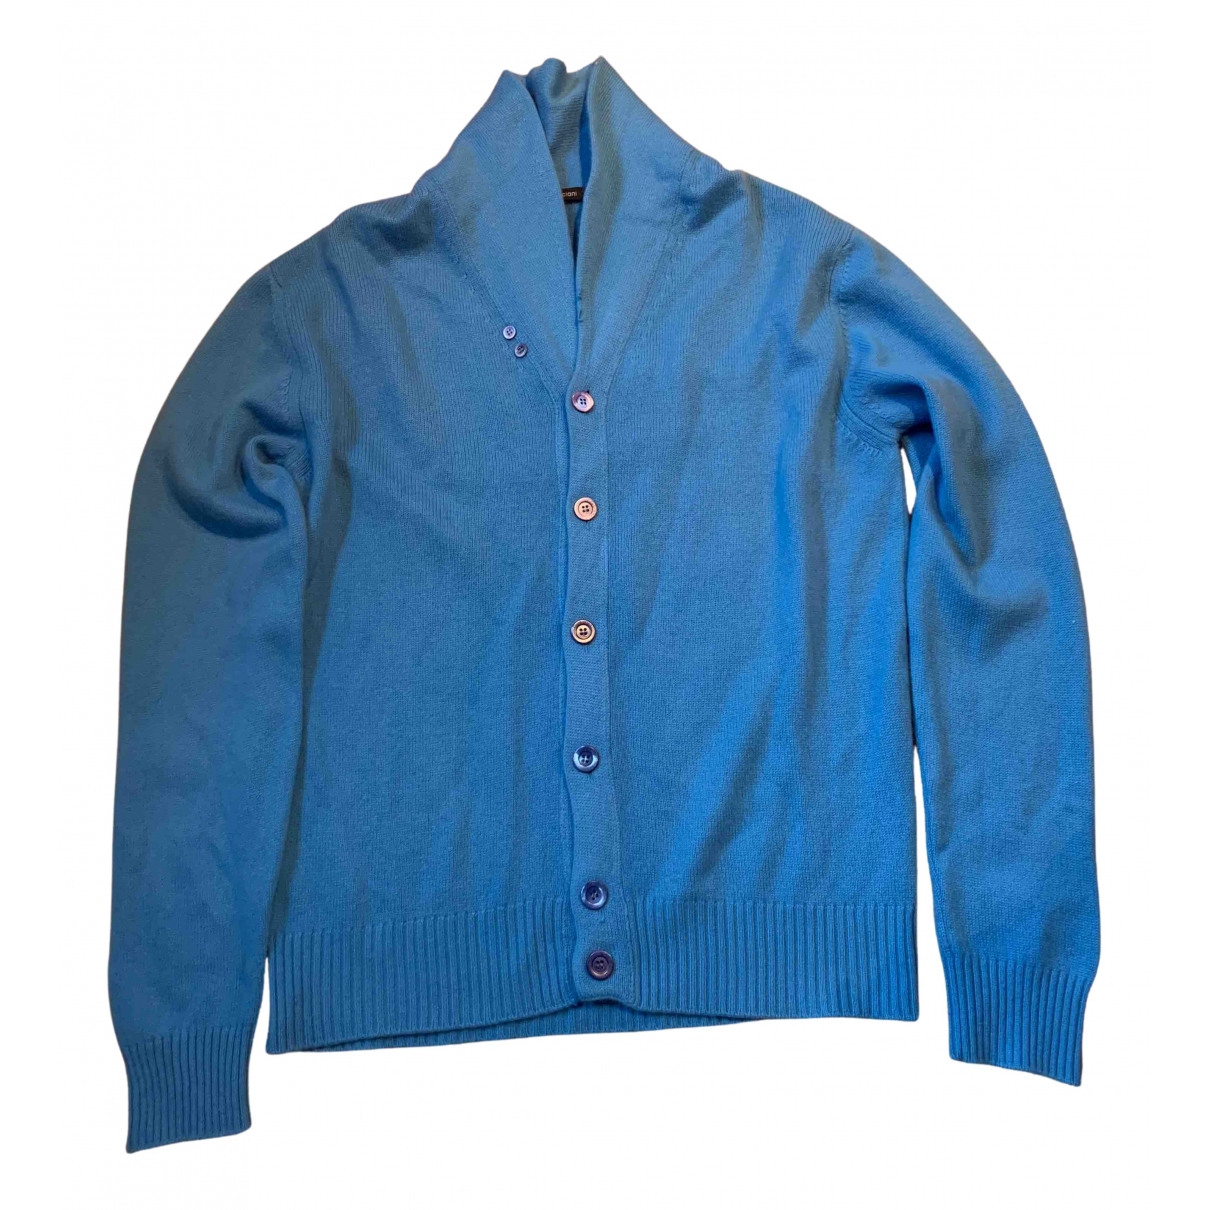 Cruciani N Blue Cashmere jacket  for Men 54 IT